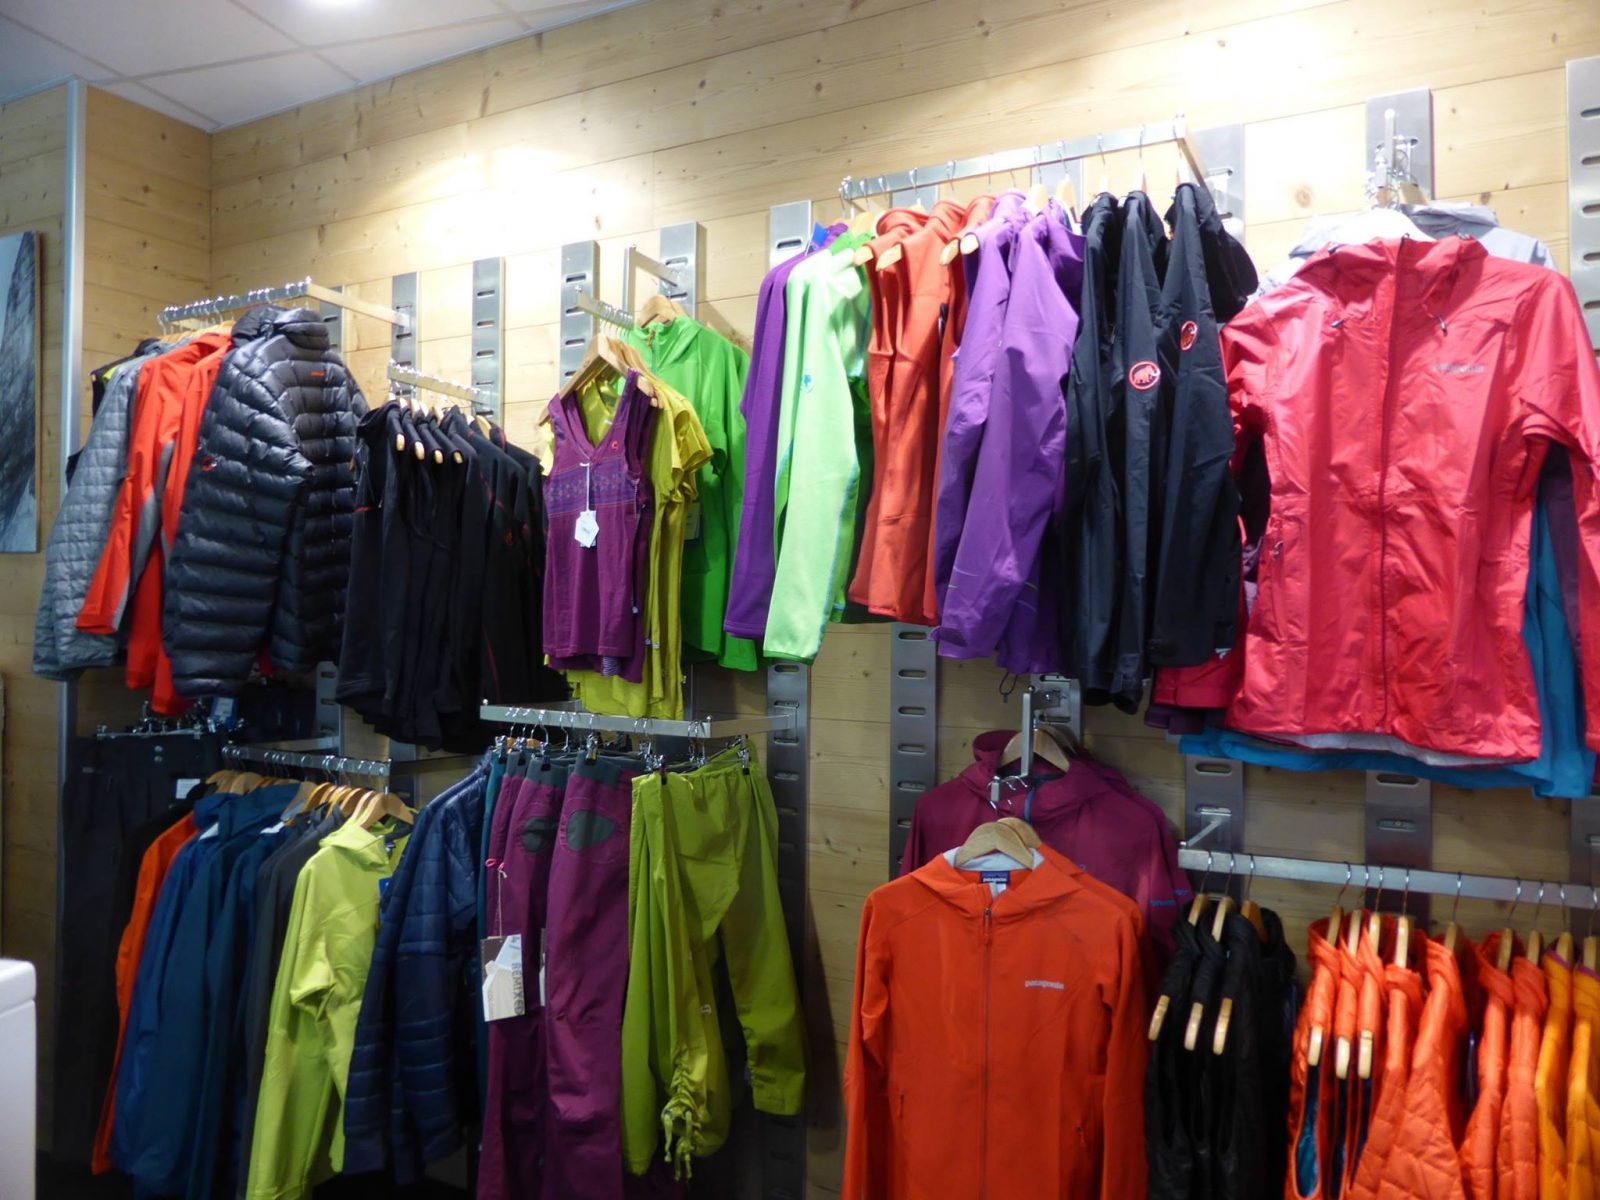 Magasin de sports – Objectif Meije (3)